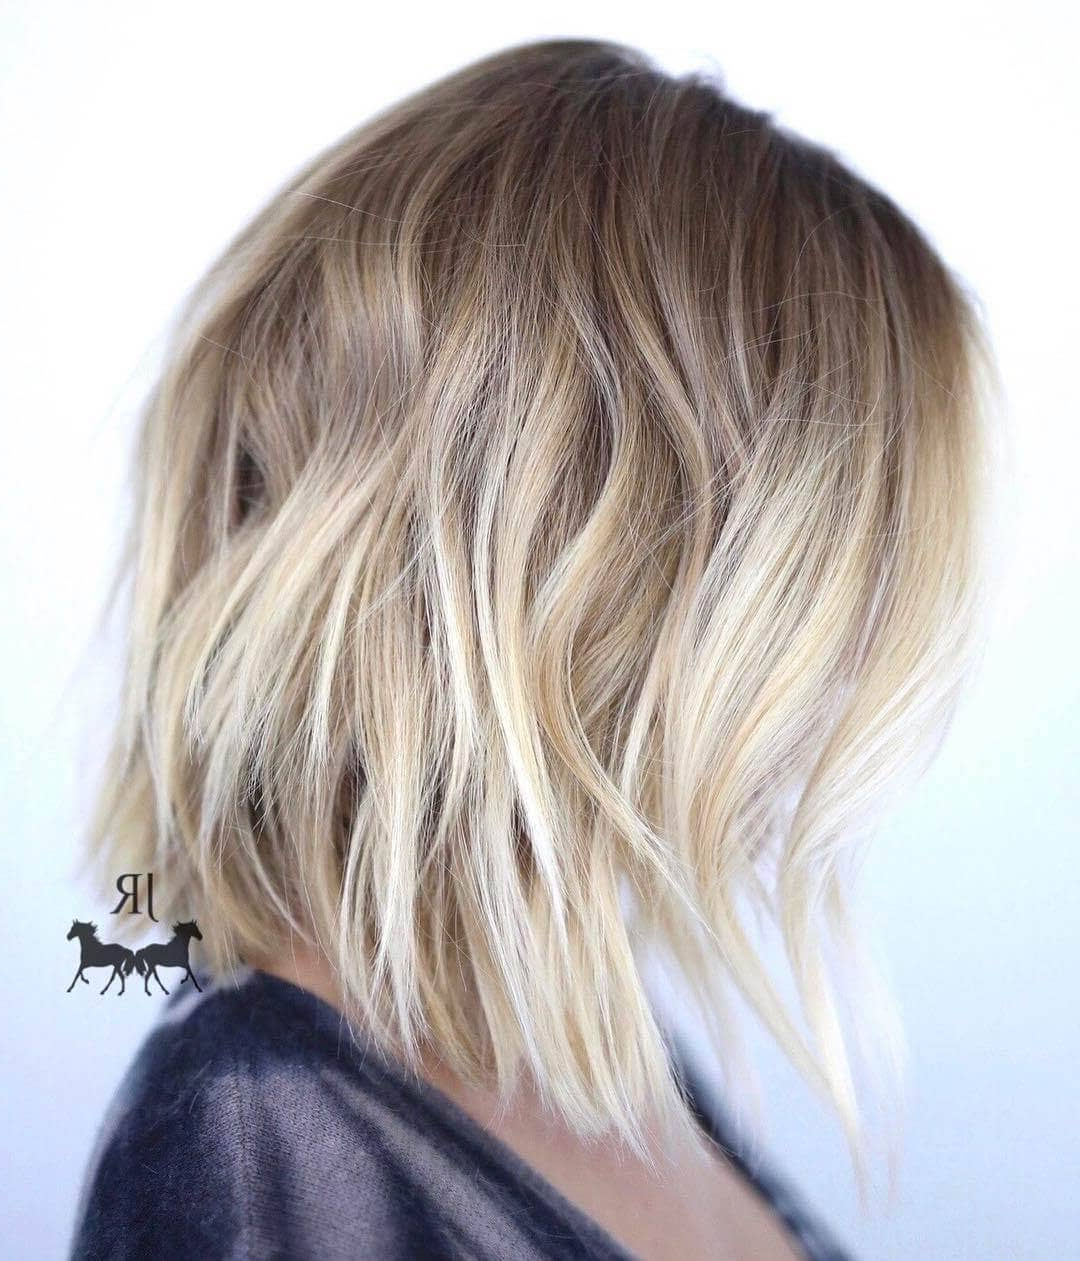 50 Fresh Short Blonde Hair Ideas To Update Your Style In 2018 For Blonde Bob Hairstyles With Bangs (Gallery 16 of 20)